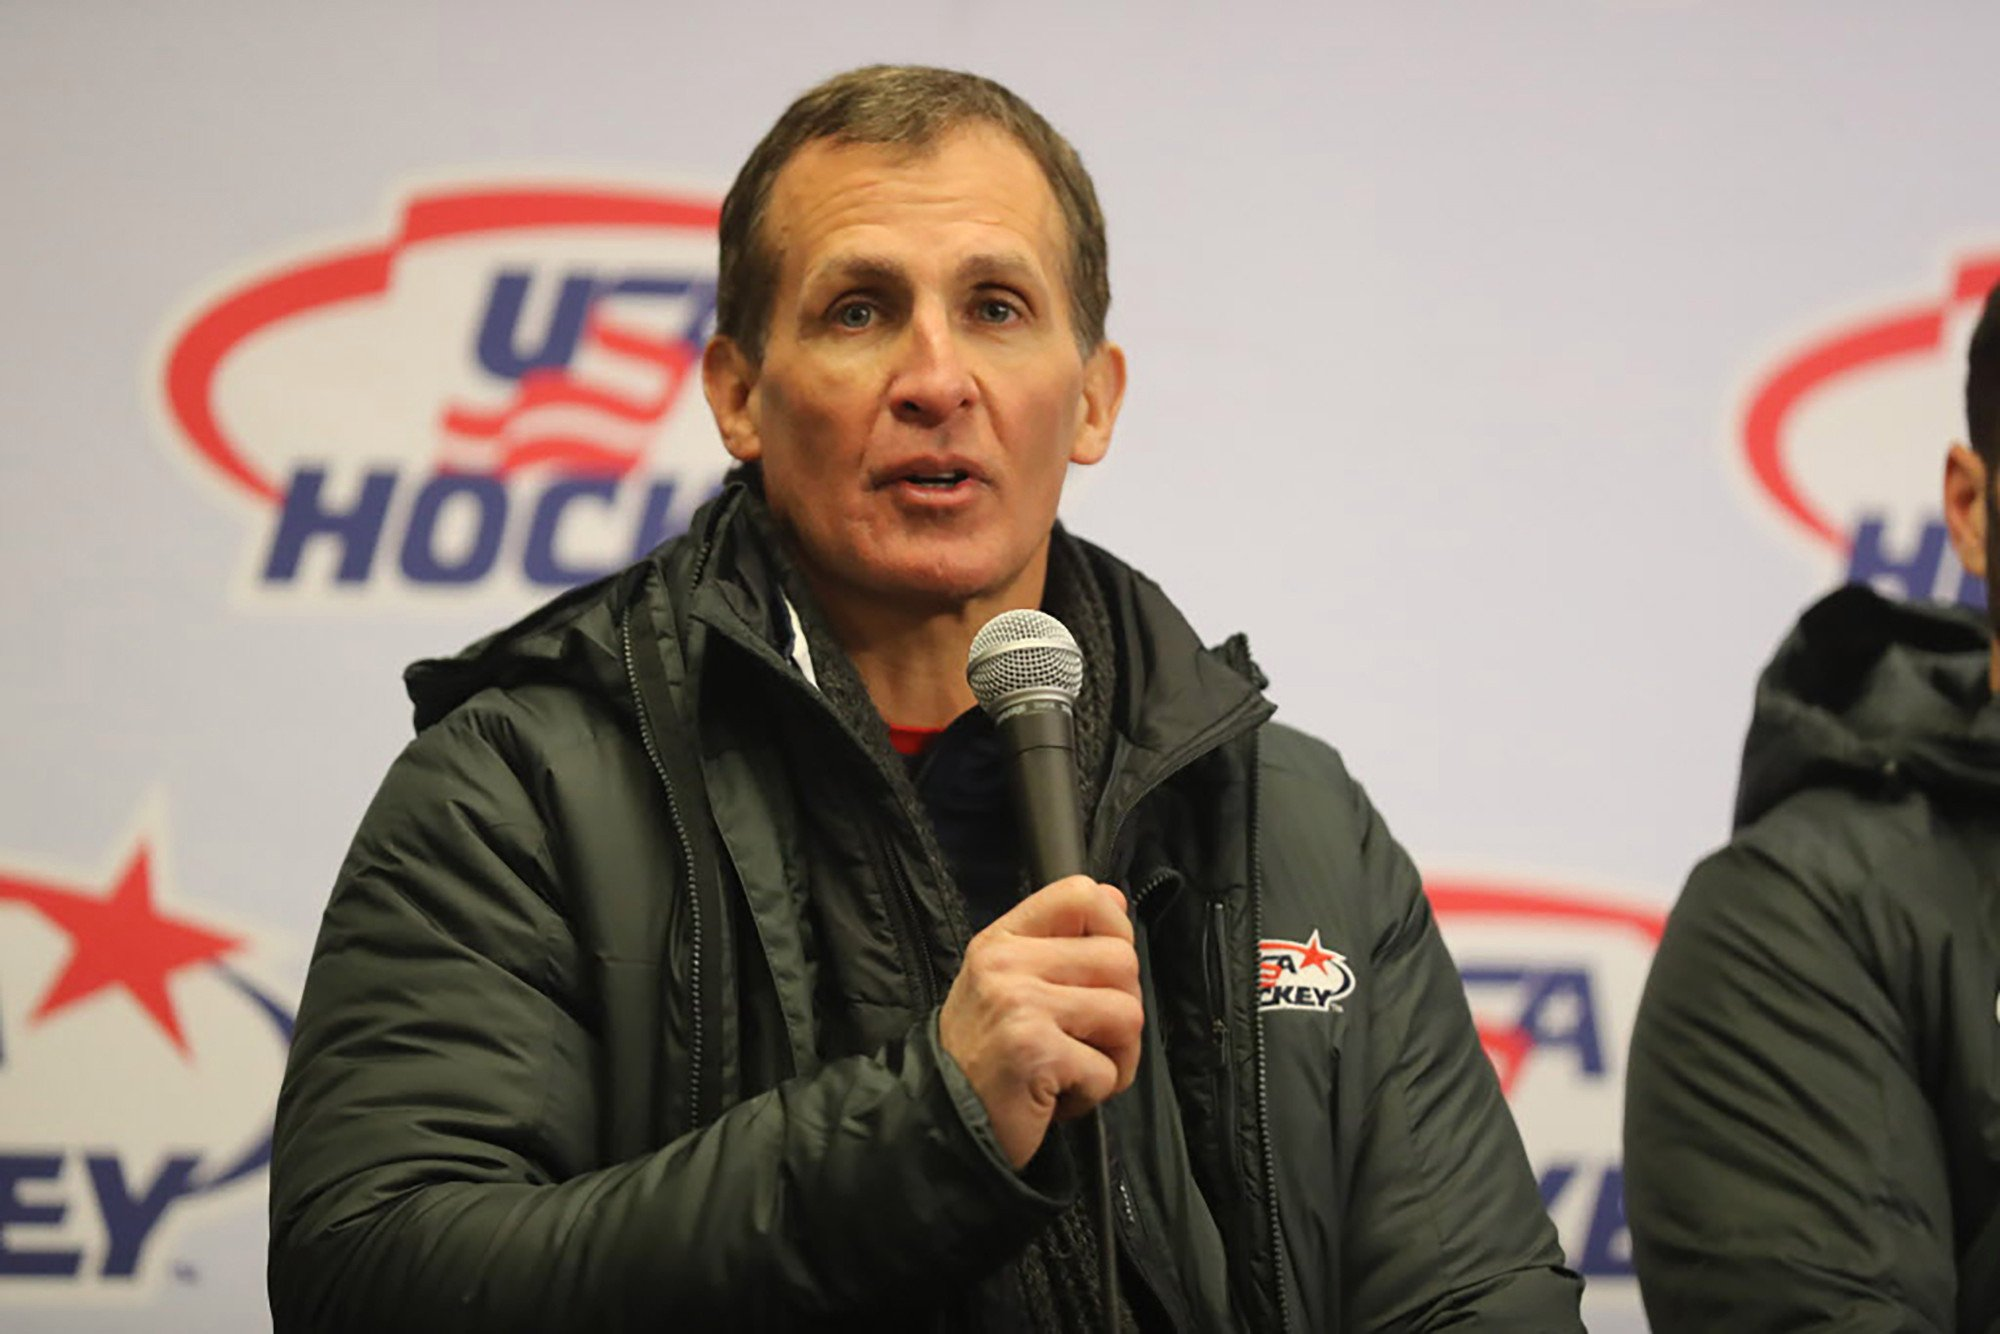 'Furious' US hockey coach skips handshake with Russian coach